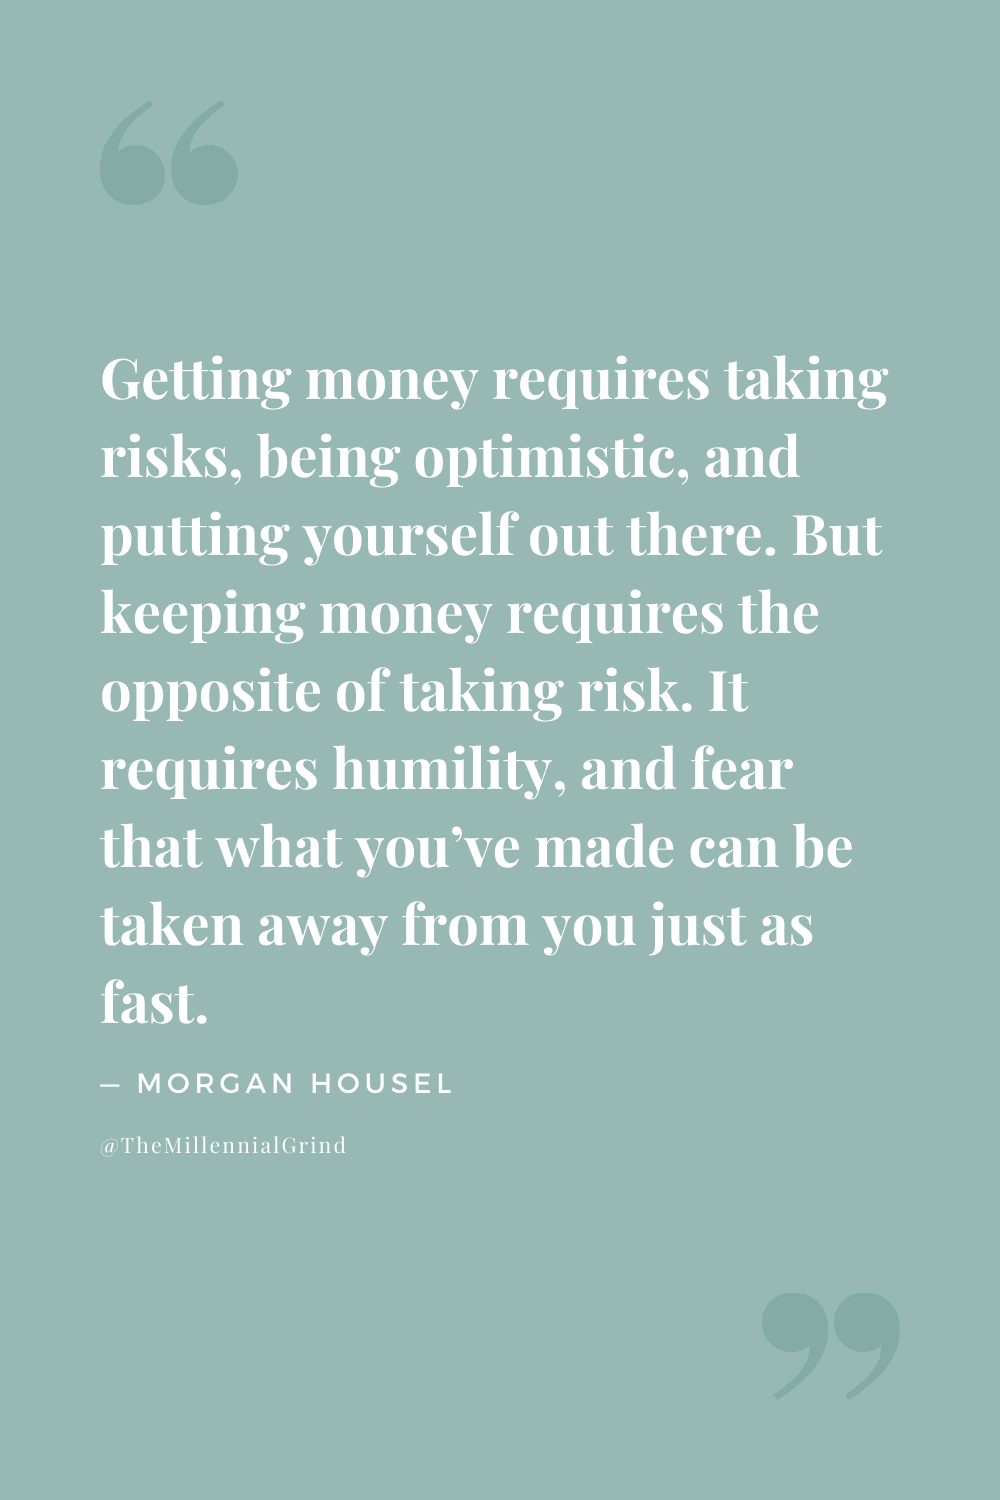 Quotes From The Psychology of Money by Morgan Housel